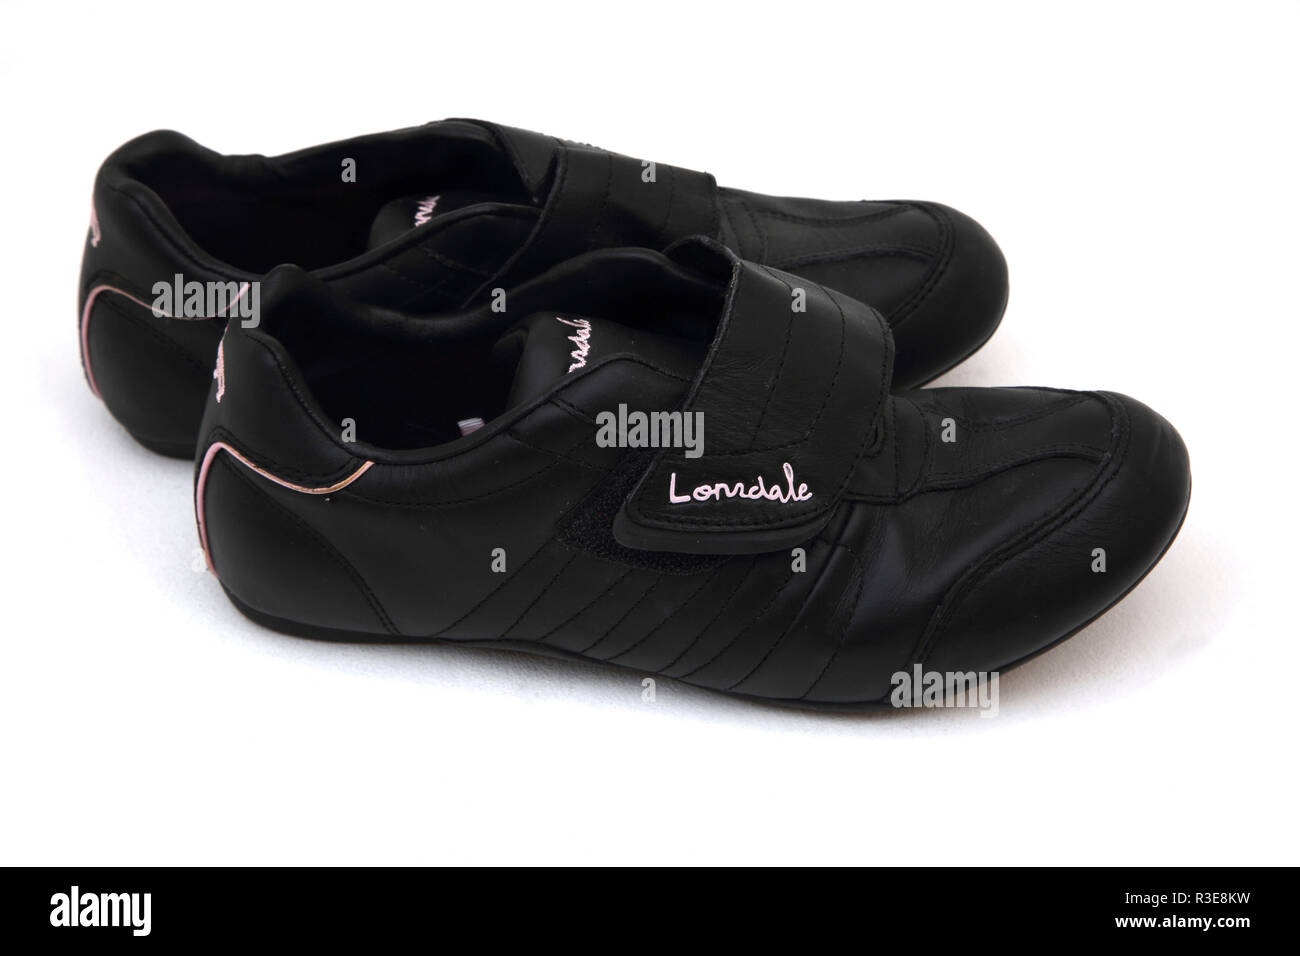 Black Leather Lonsdale trainers Stock